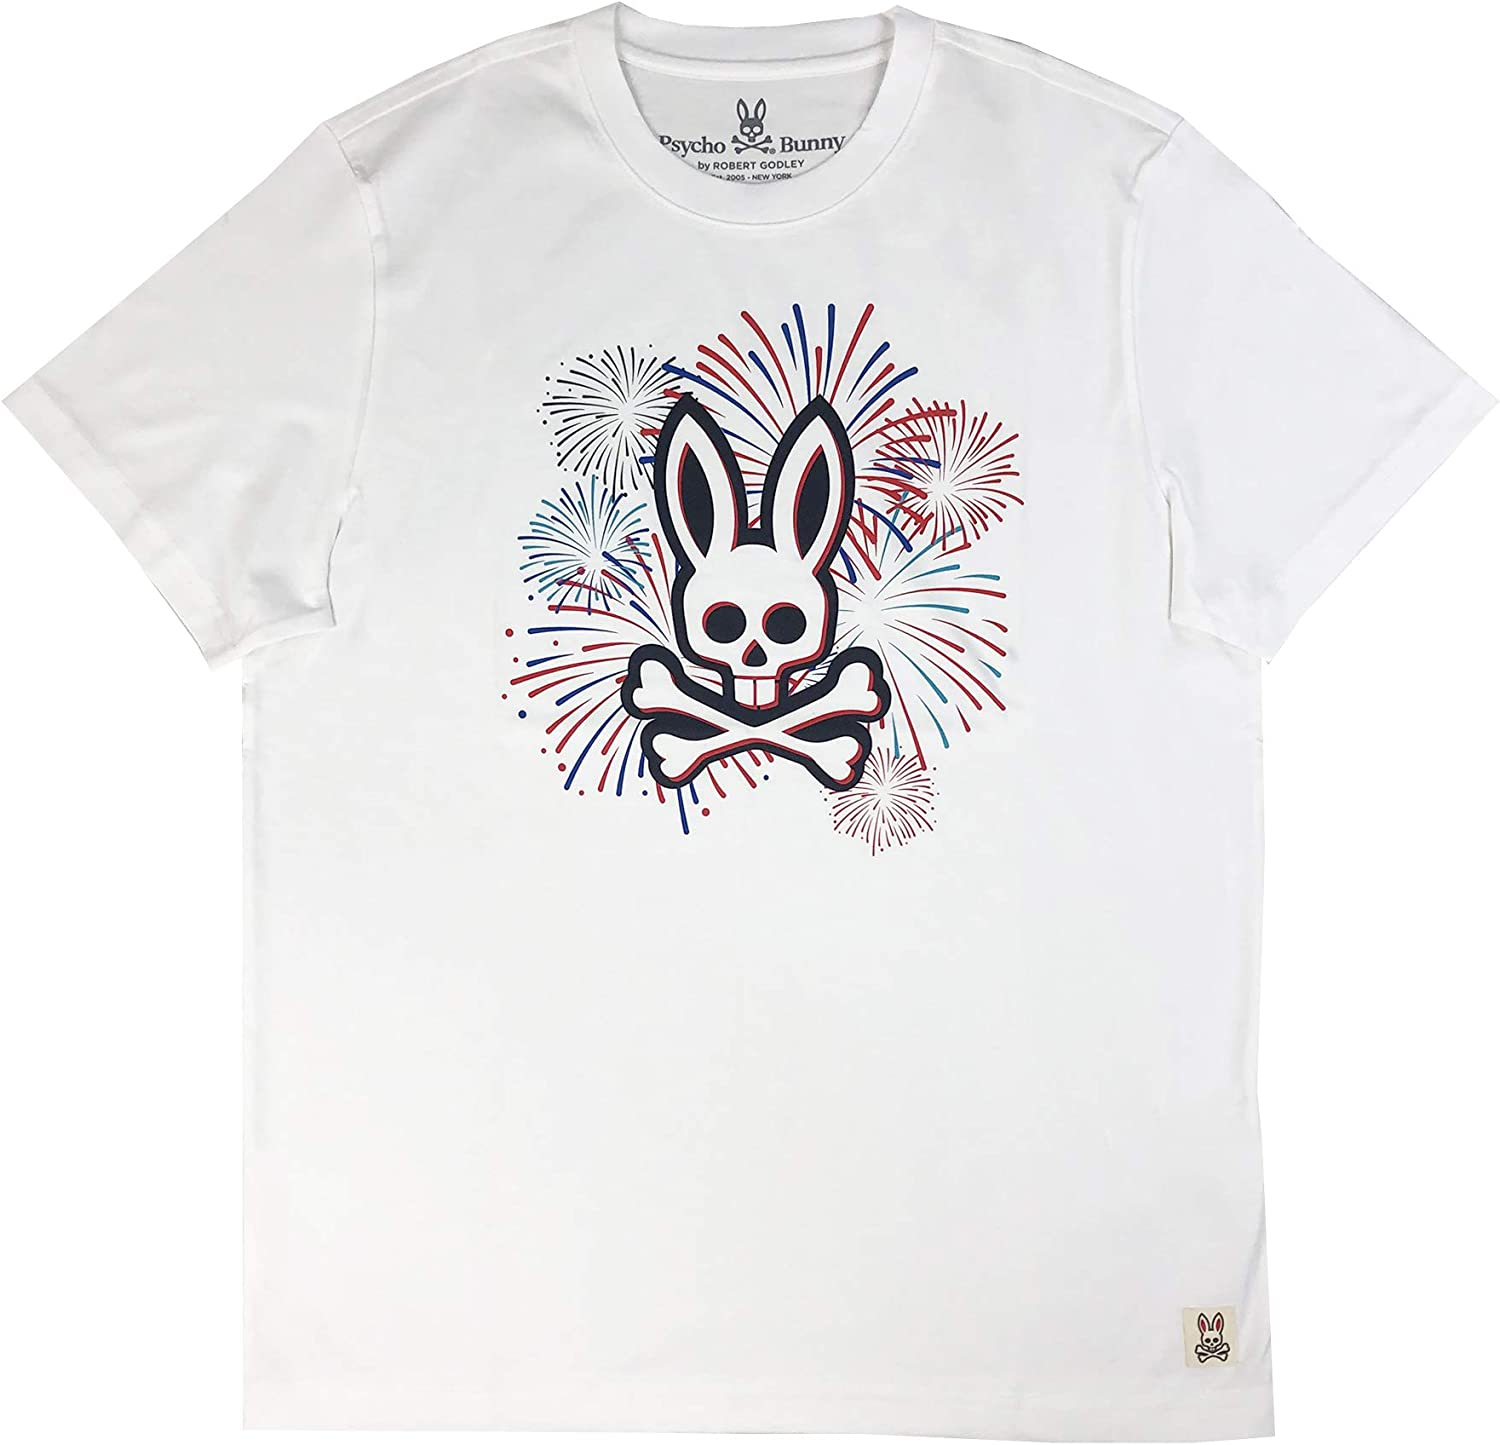 Psycho Bunny Men's Pima Cotton Short Sleeve Graphic Tee with Fireworks Prints